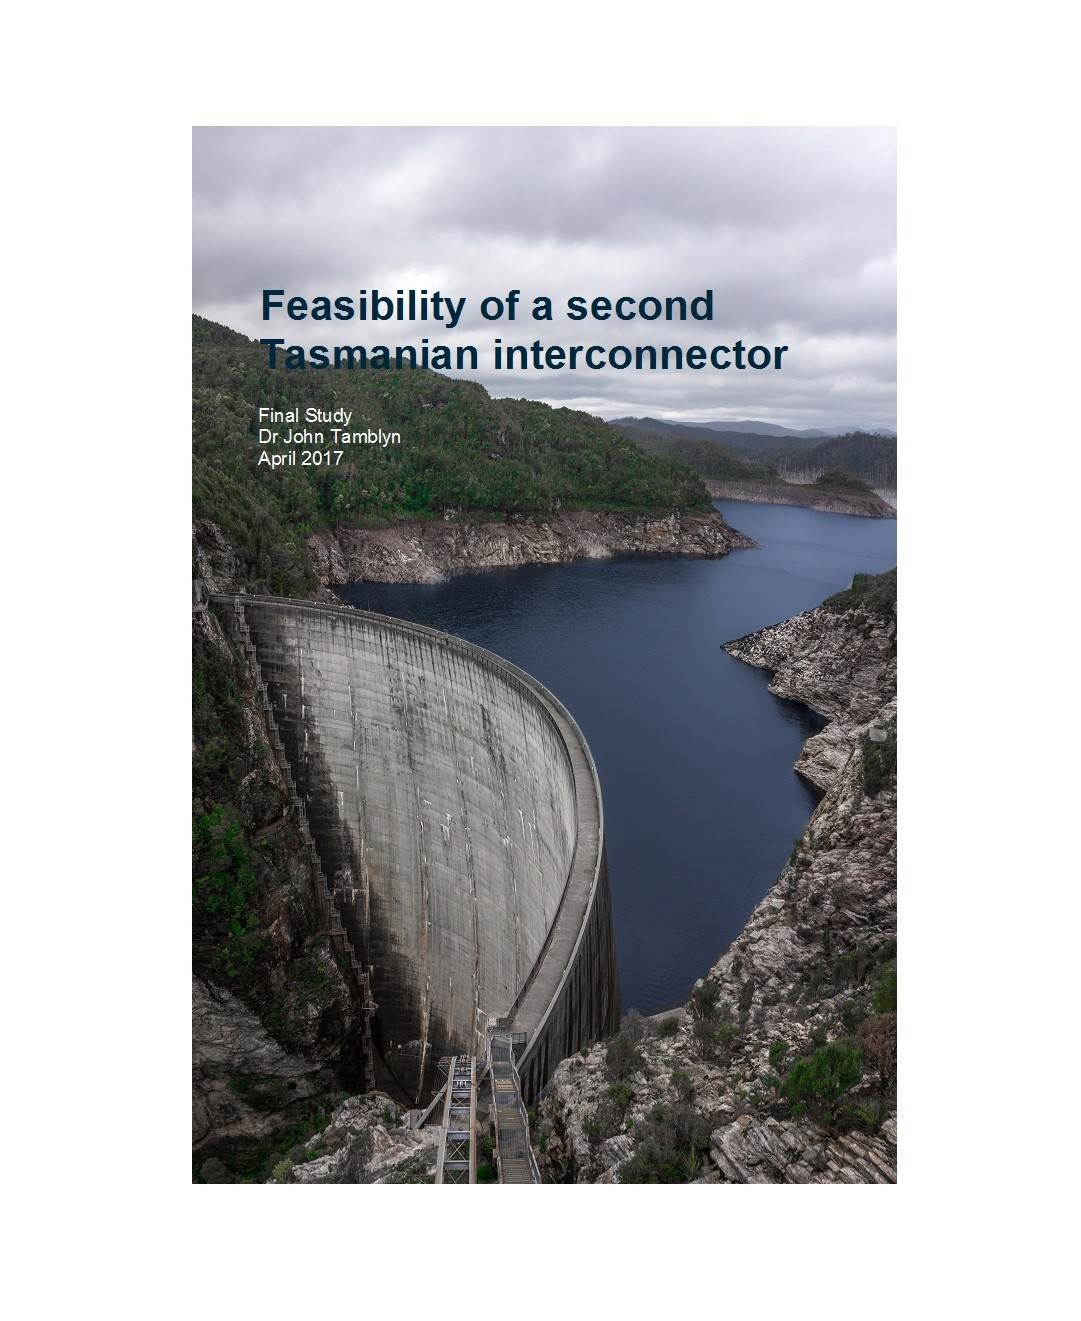 Free feasibility study example 11